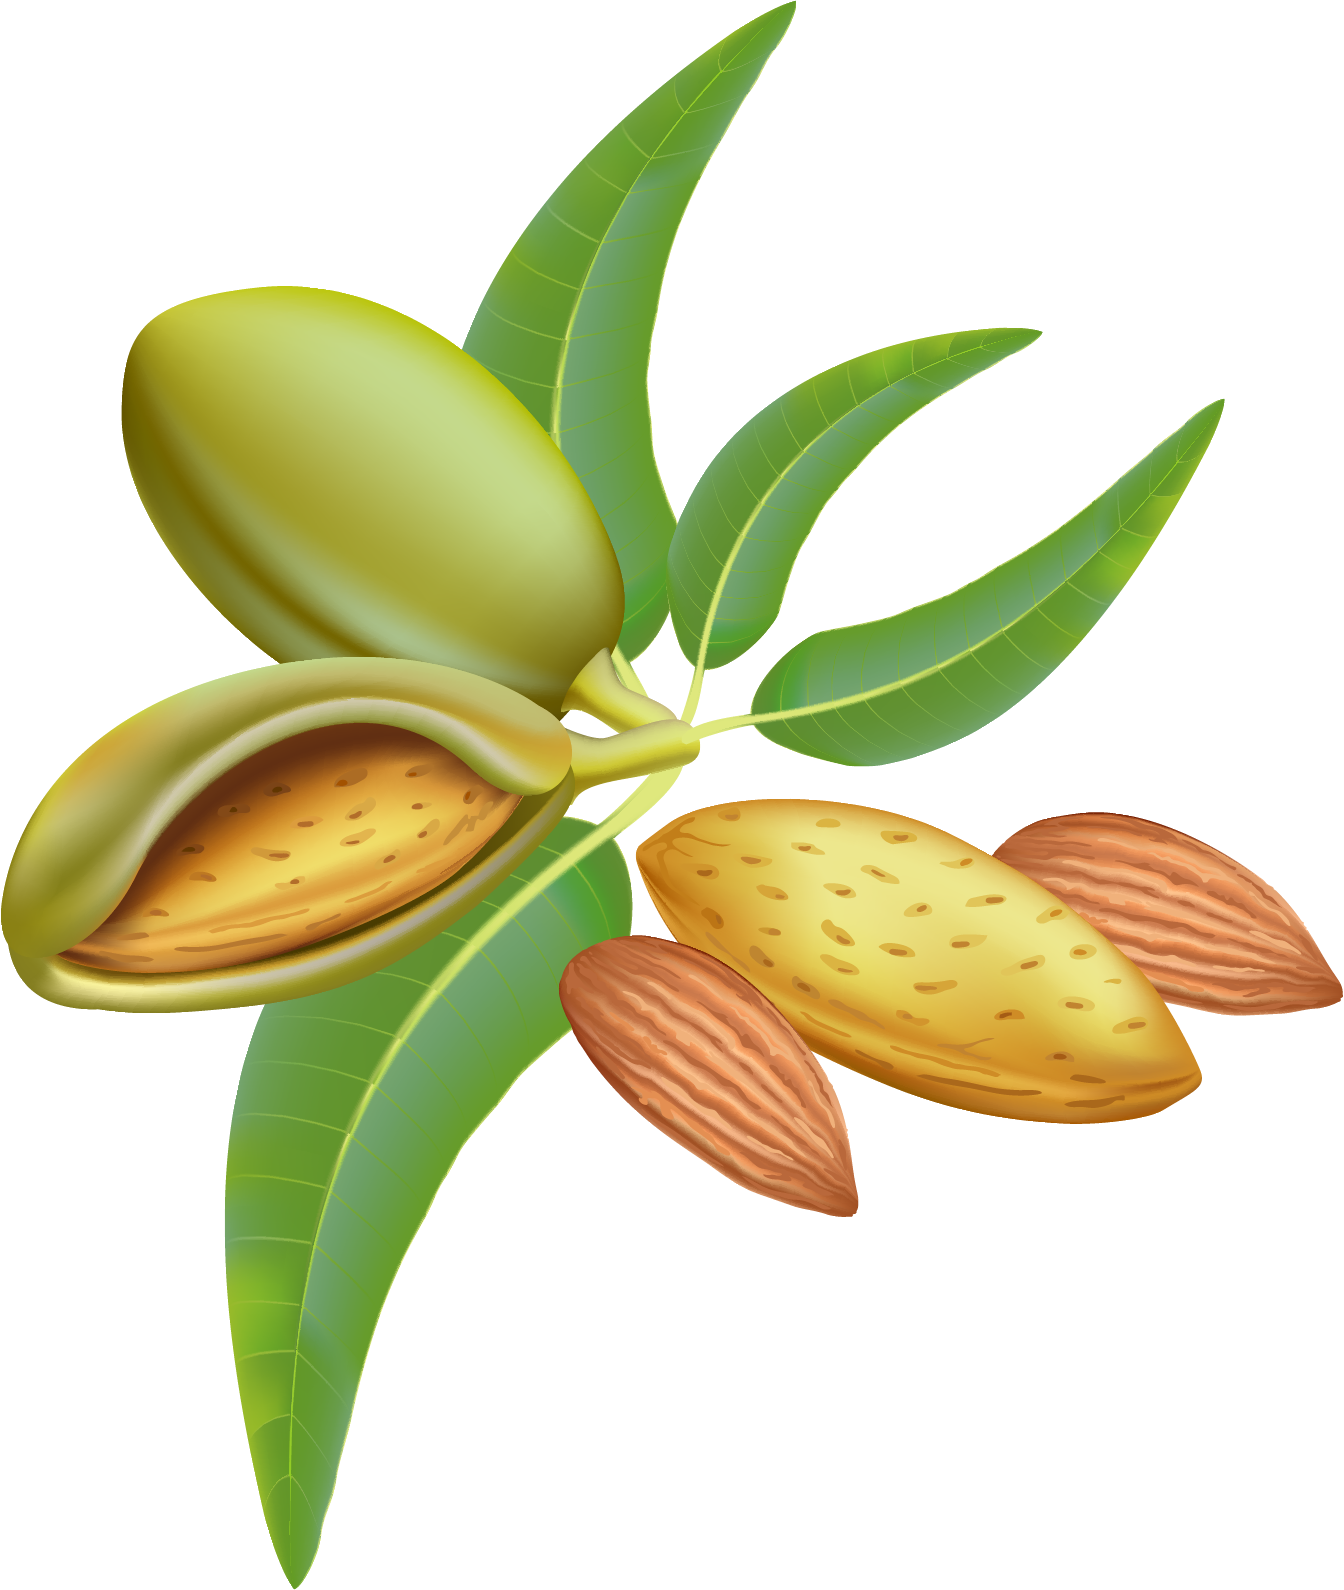 almond png transparent images png only #30295